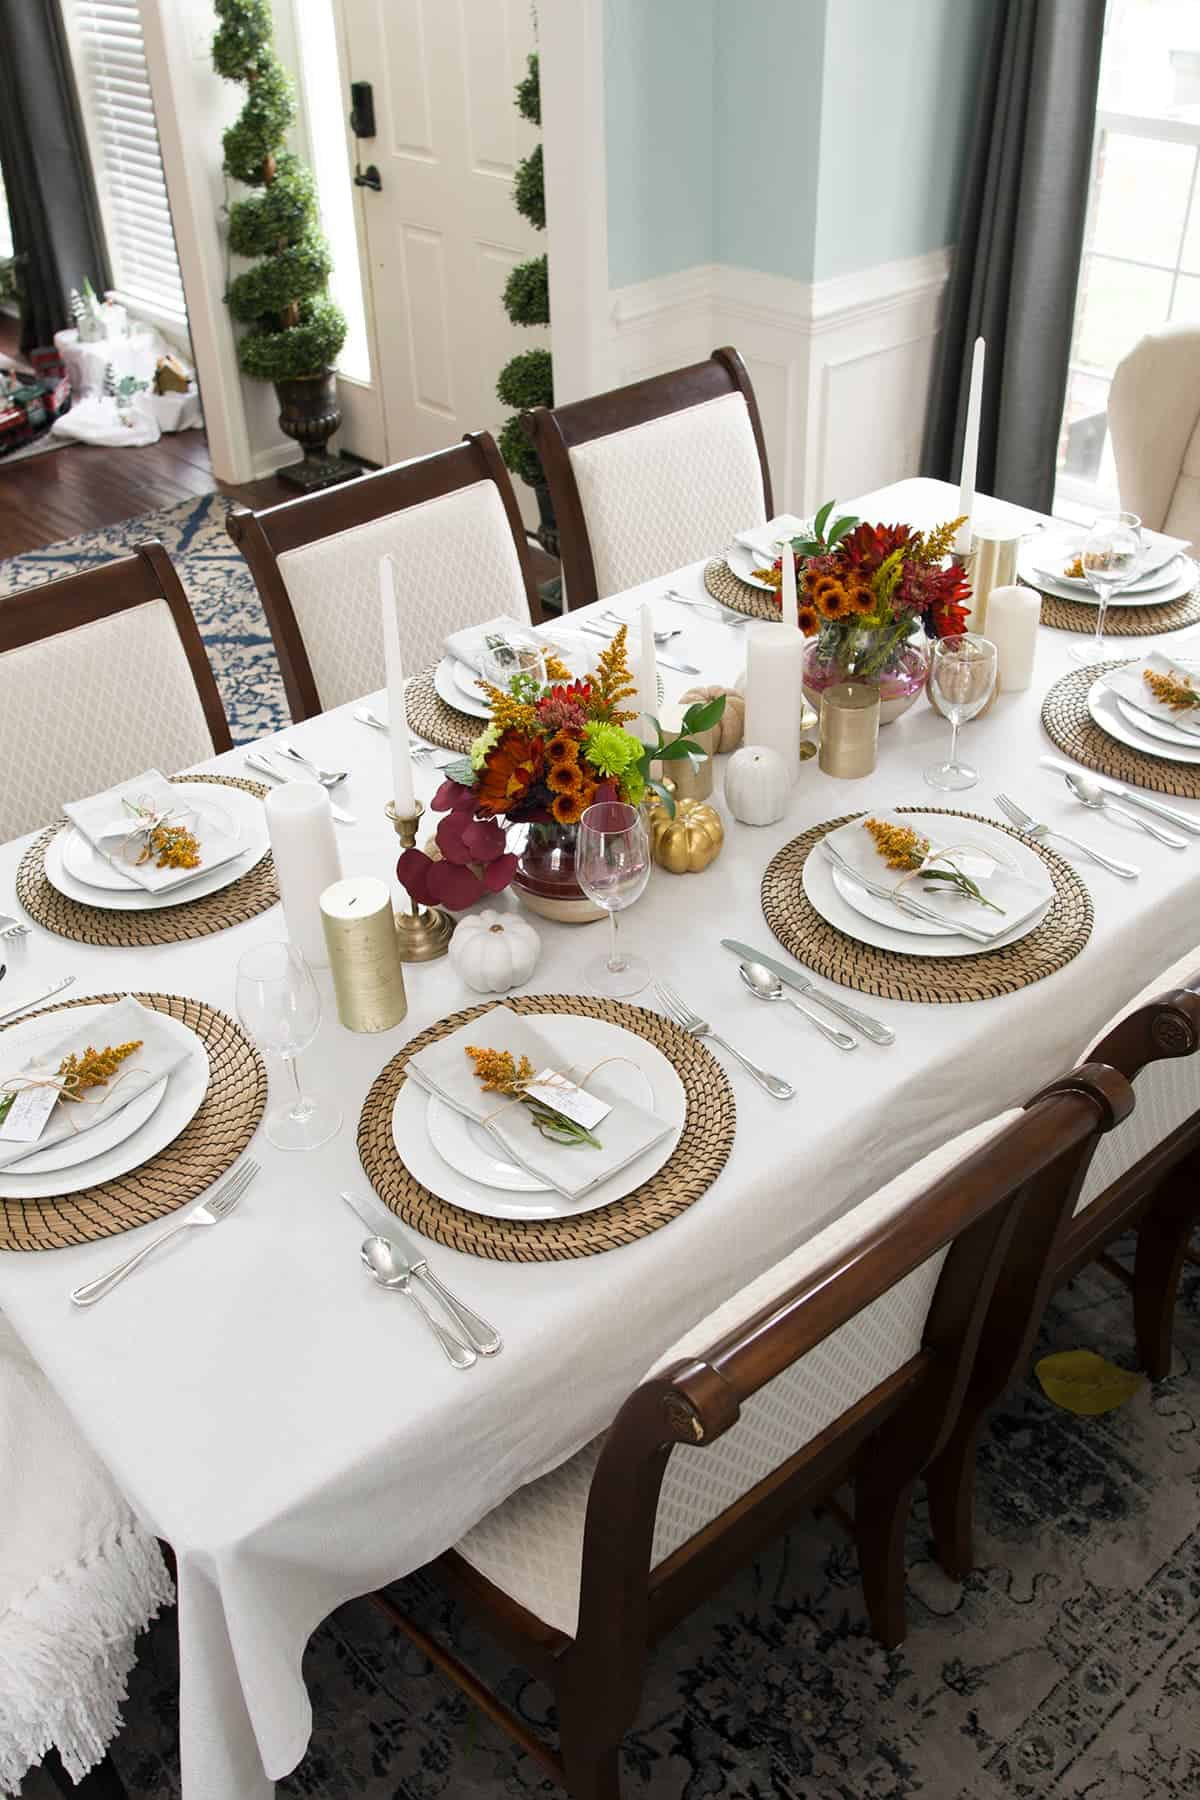 Overhead view of simple Thanksgving tablescape with neutral palette and natural elements.